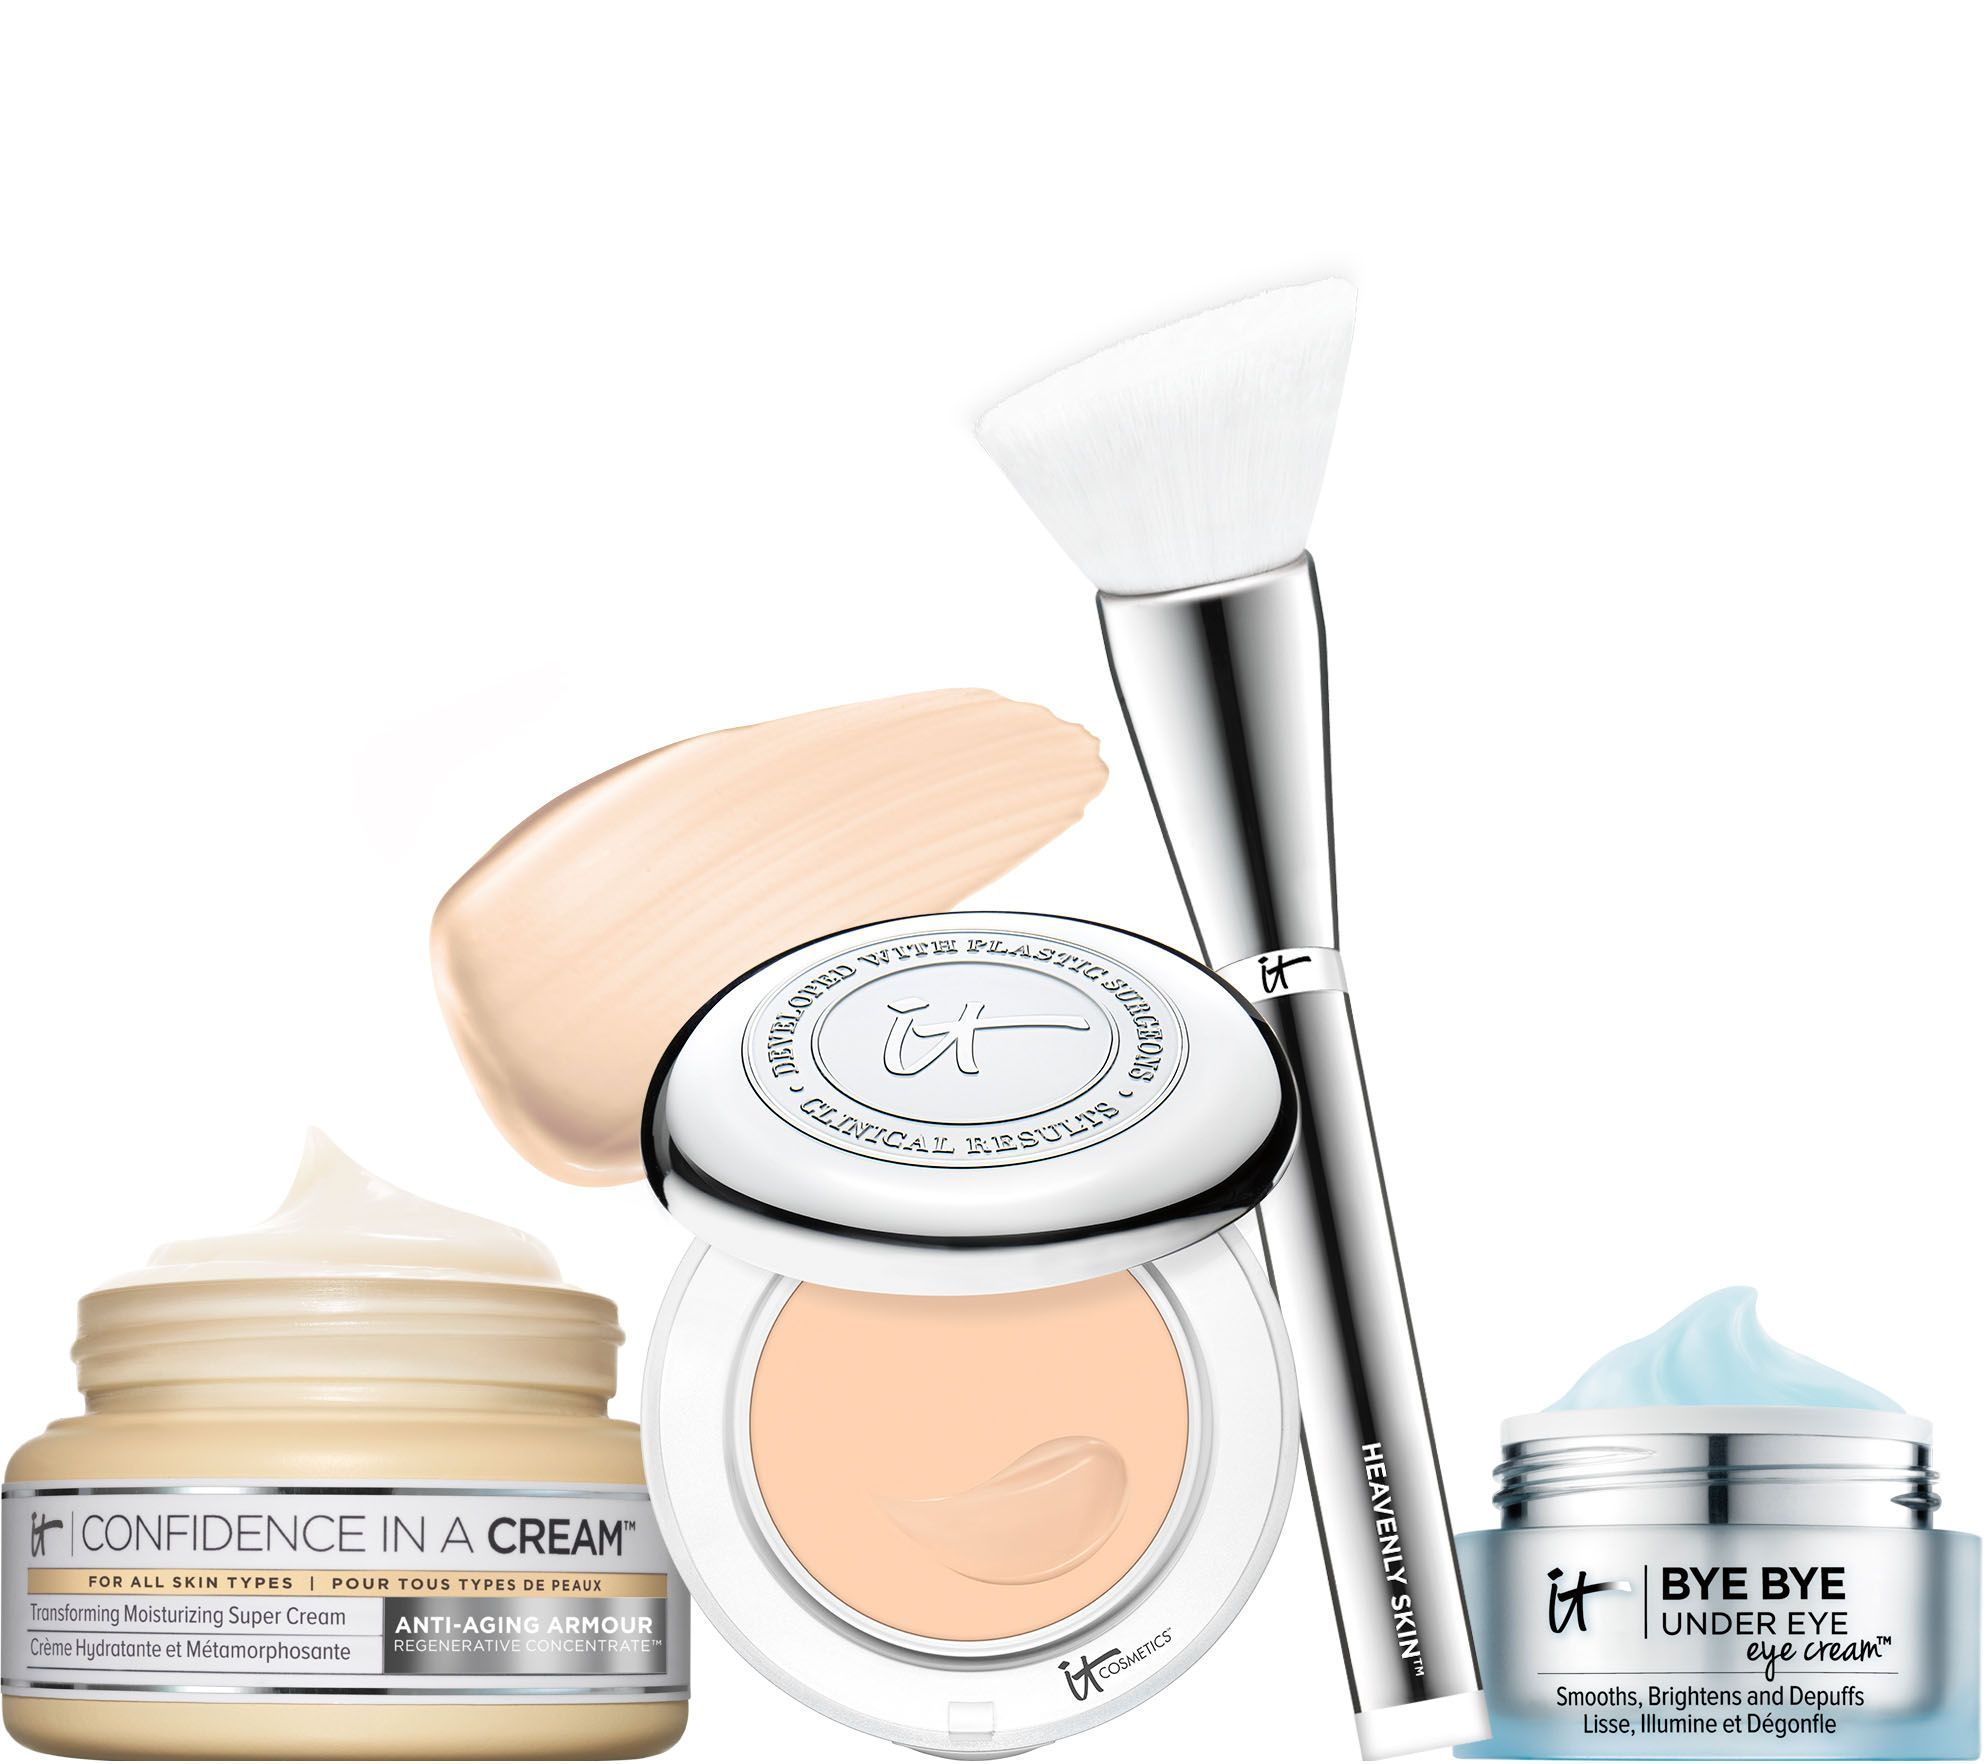 This is an exclusive sneak peek at the TSV on QVC from #itcosmetics I have a sneak peek review @ http://aguidetowhatsinsideyourbeautybag.blogspot.com/2017/01/it-cosmetics-confidence-in-compact-full.html #NewYearNewConfidence #itgirls